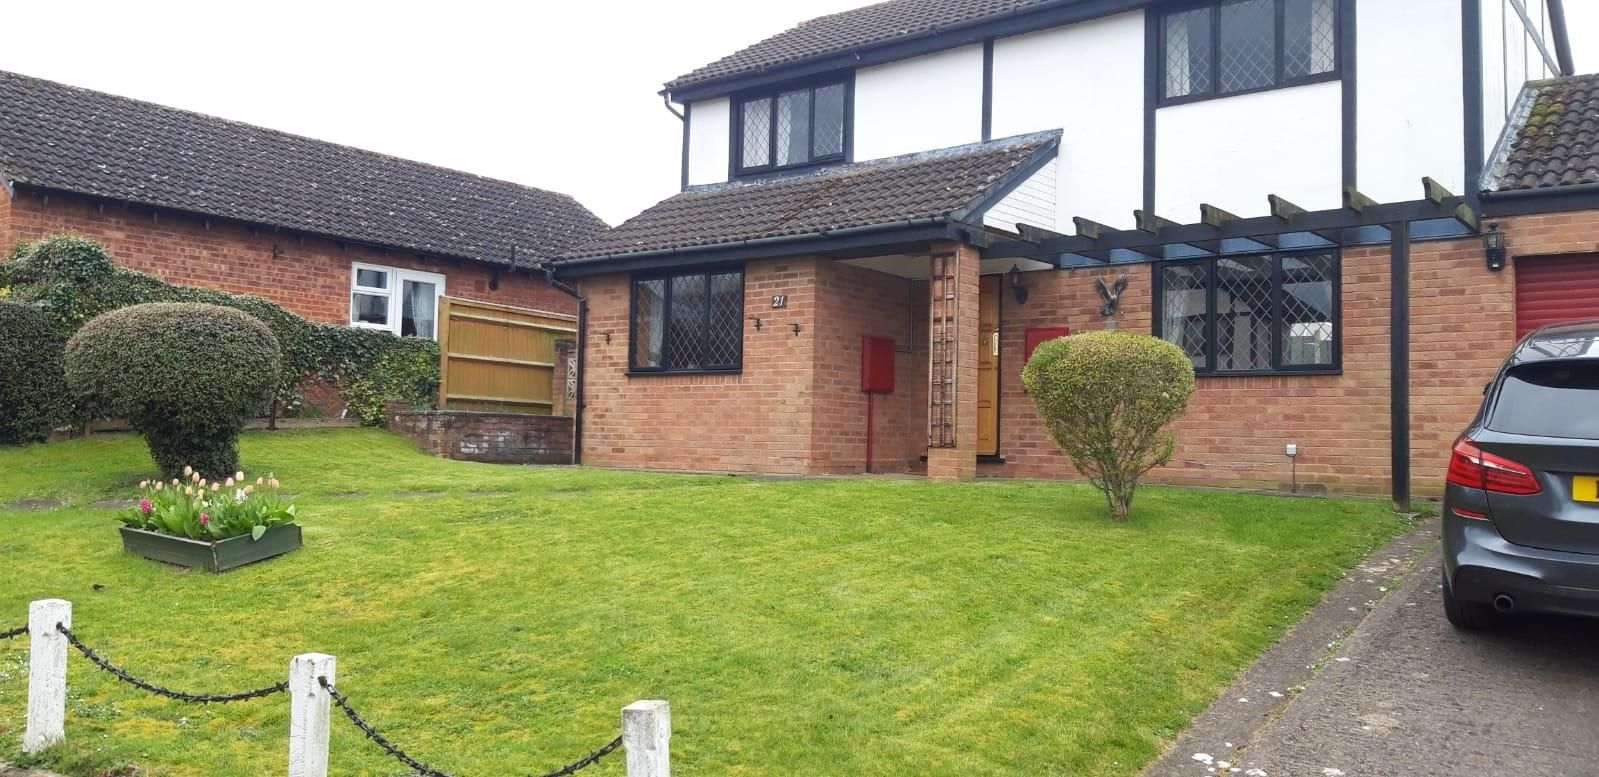 3 bed detached for sale in Leominster  - Property Image 13